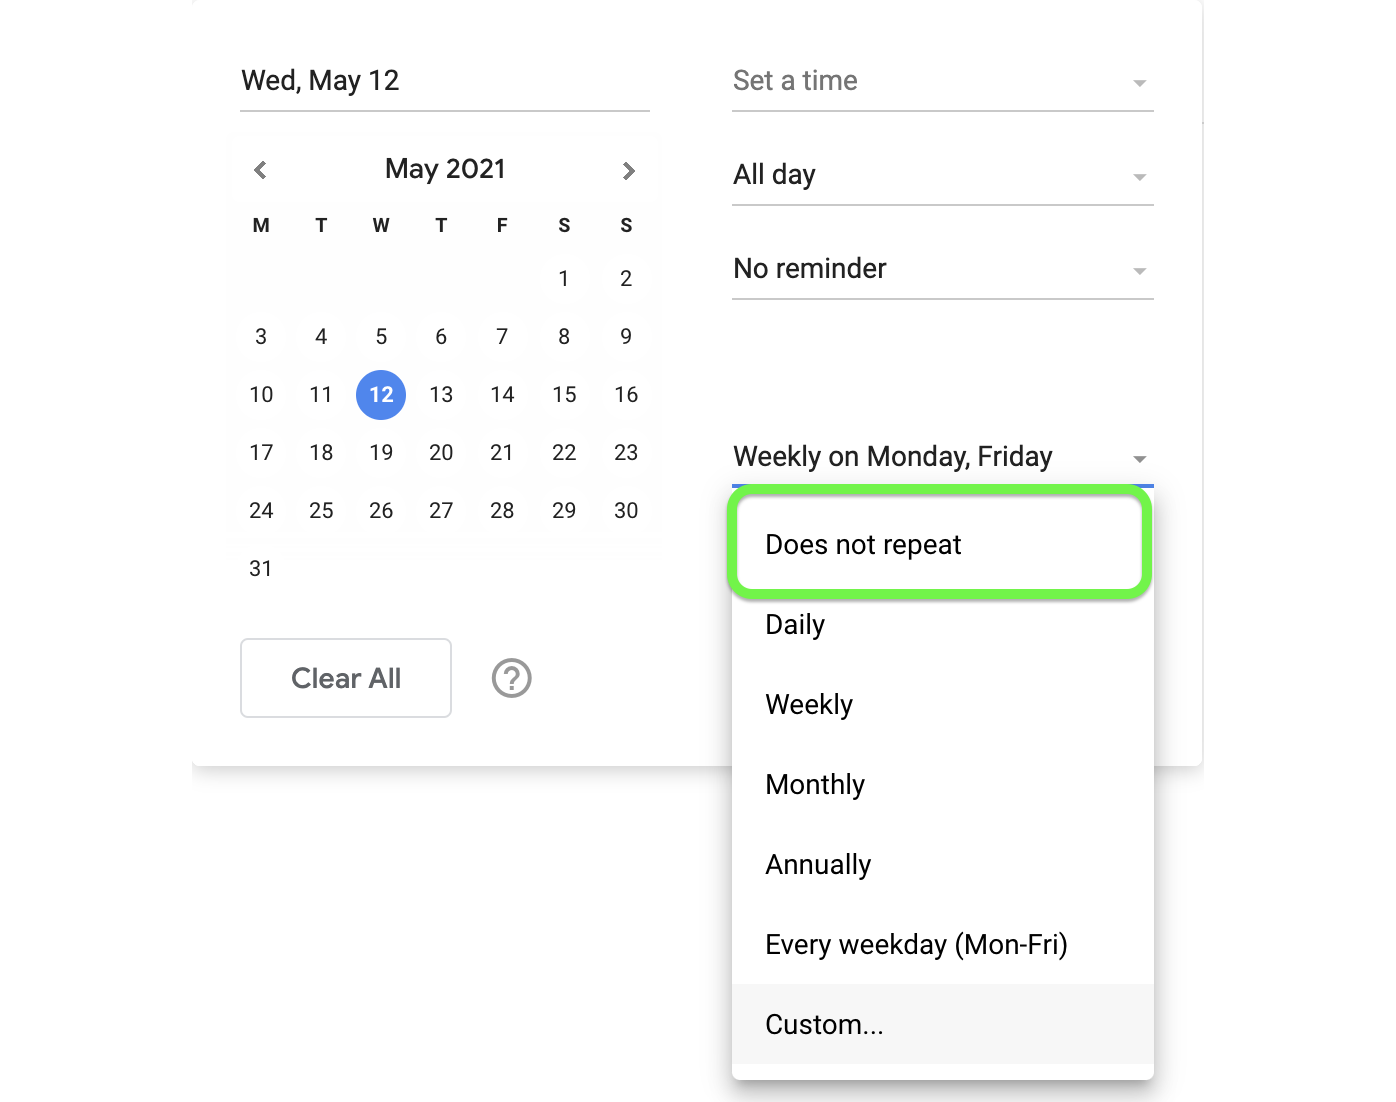 Turn off repeating tasks from the drop down menu.